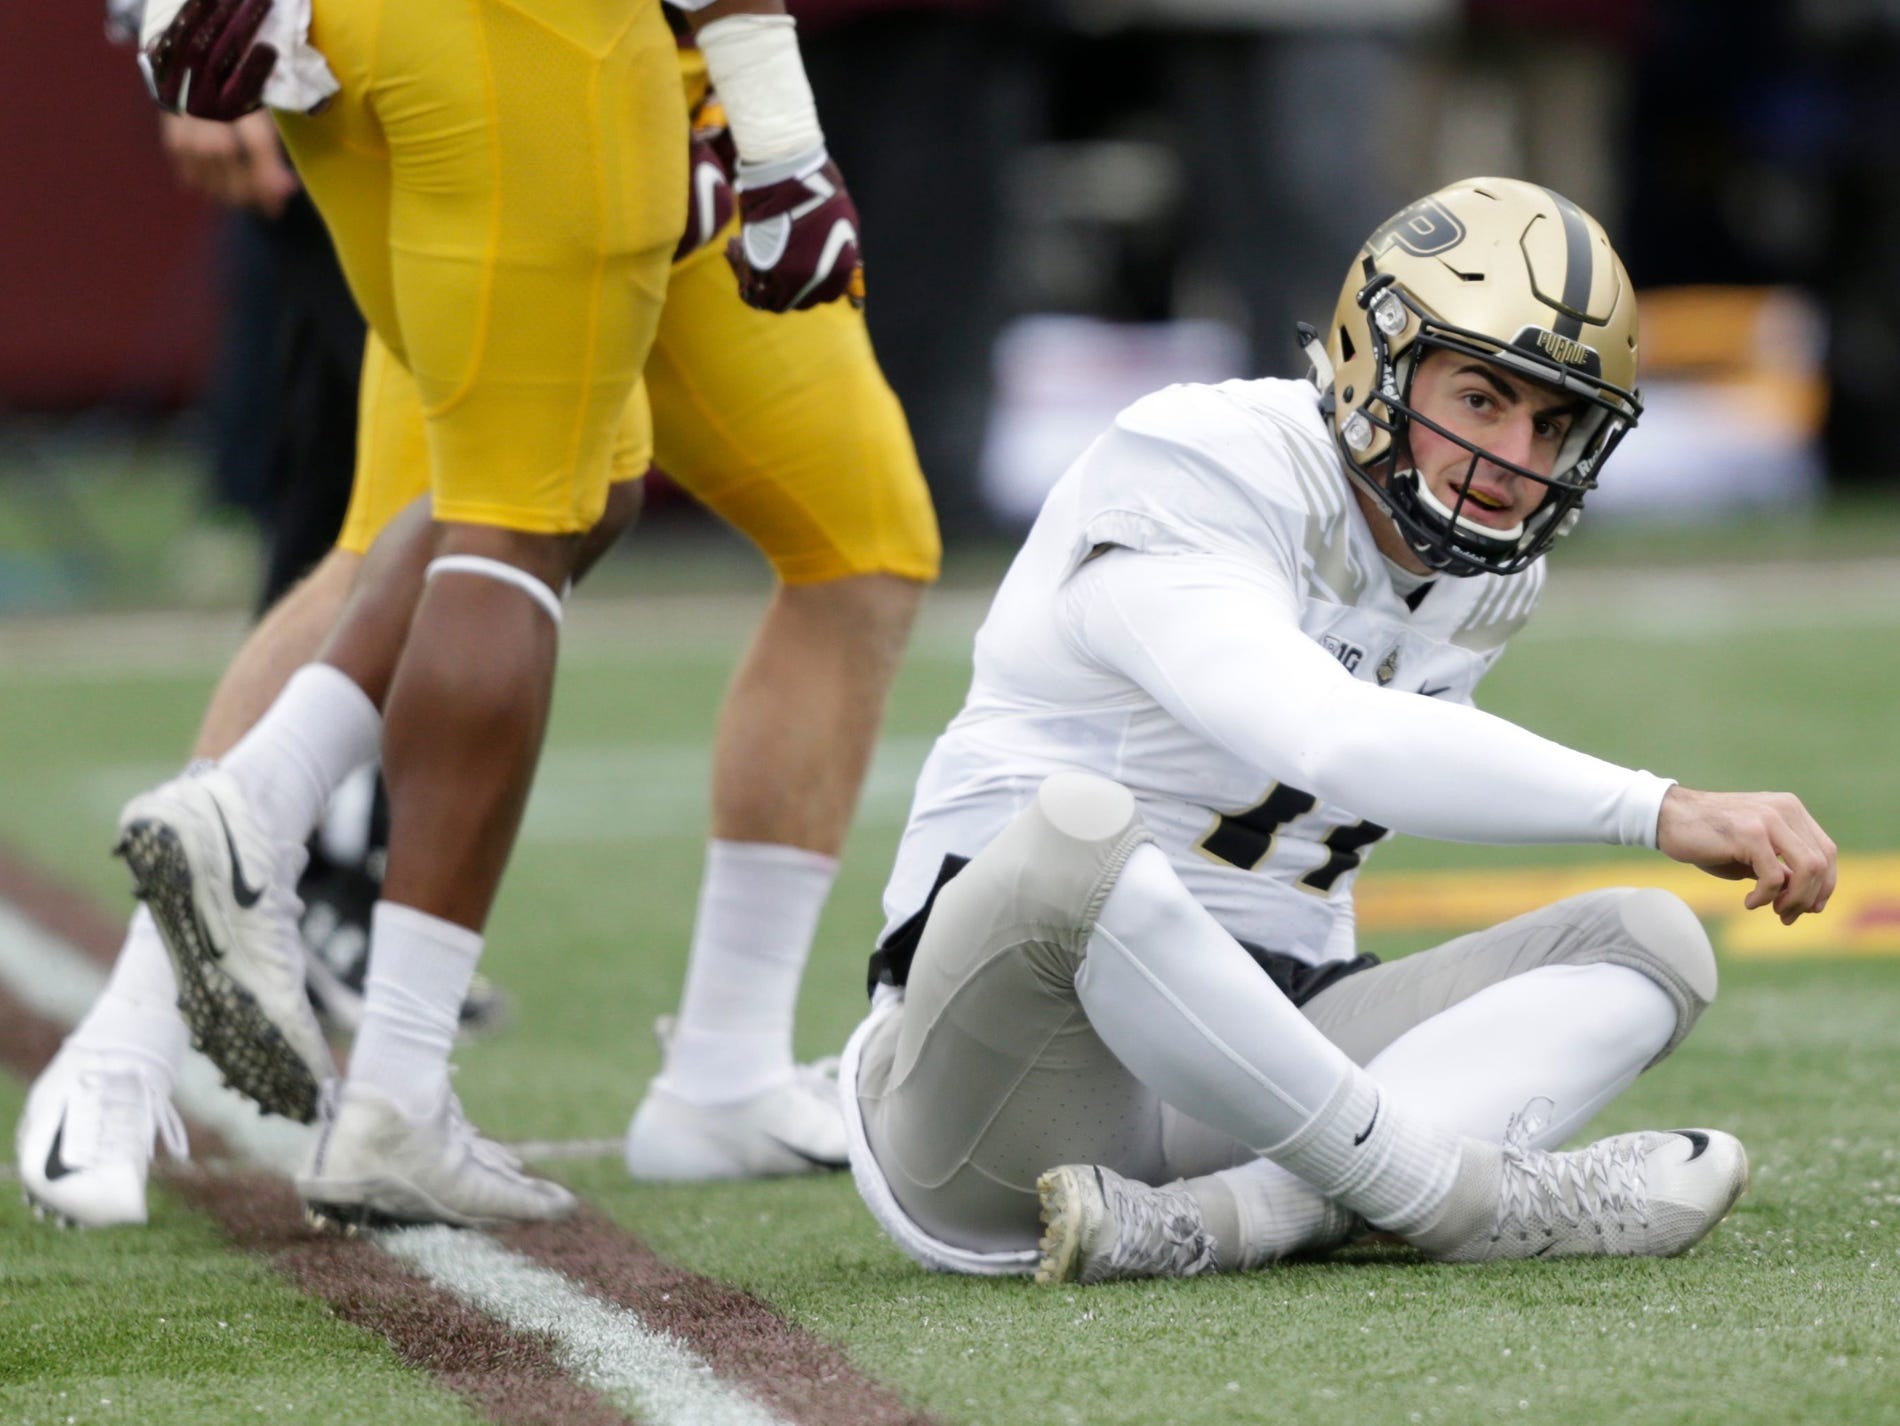 Purdue quarterback David Blough looks on after getting sacked by Minnesota in the second quarter.